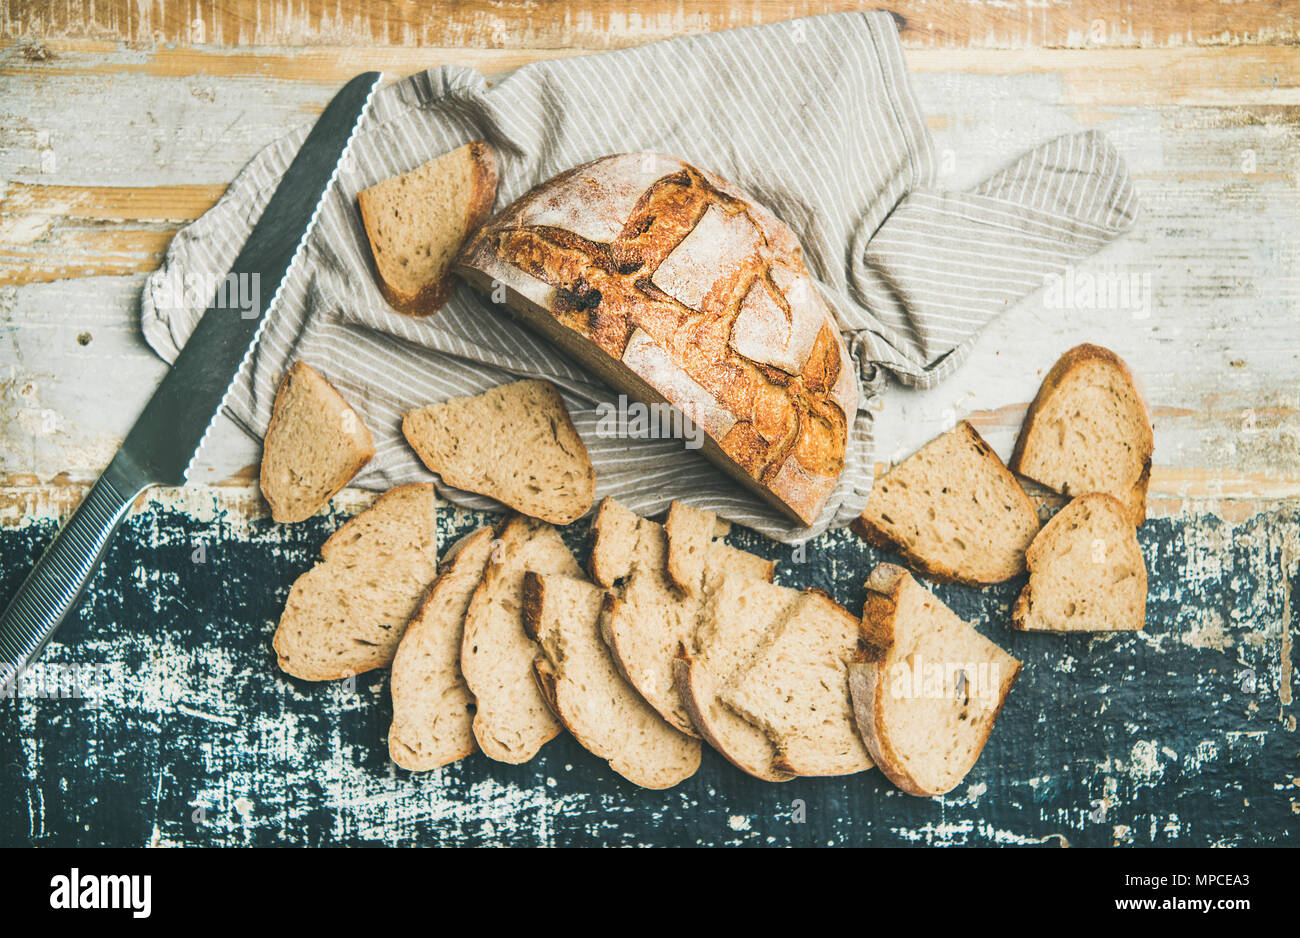 Sourdough wheat bread loaf - Stock Image